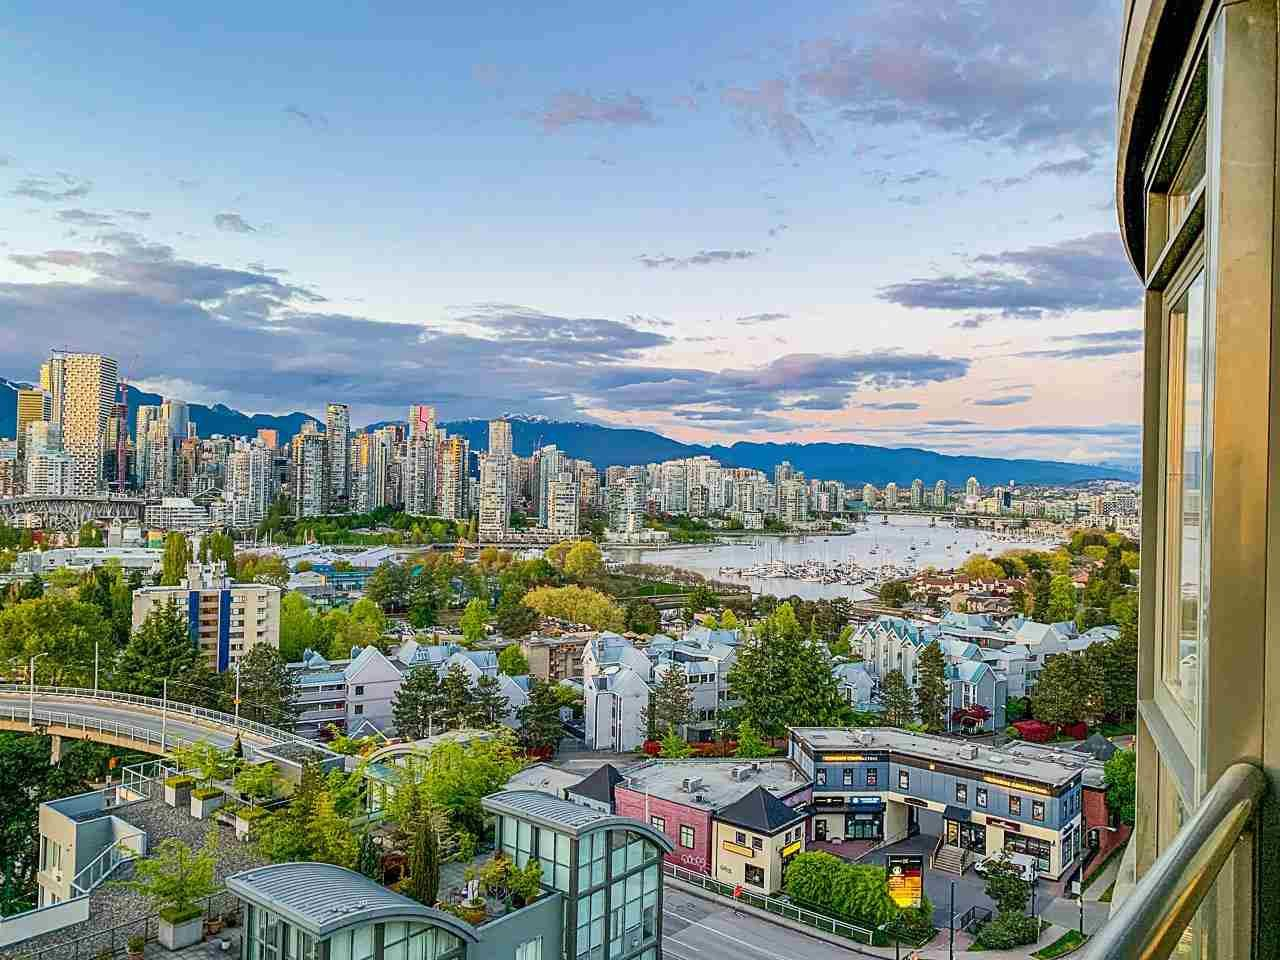 Main Photo: 1302 1428 W 6TH AVENUE in Vancouver: Fairview VW Condo for sale (Vancouver West)  : MLS®# R2586782